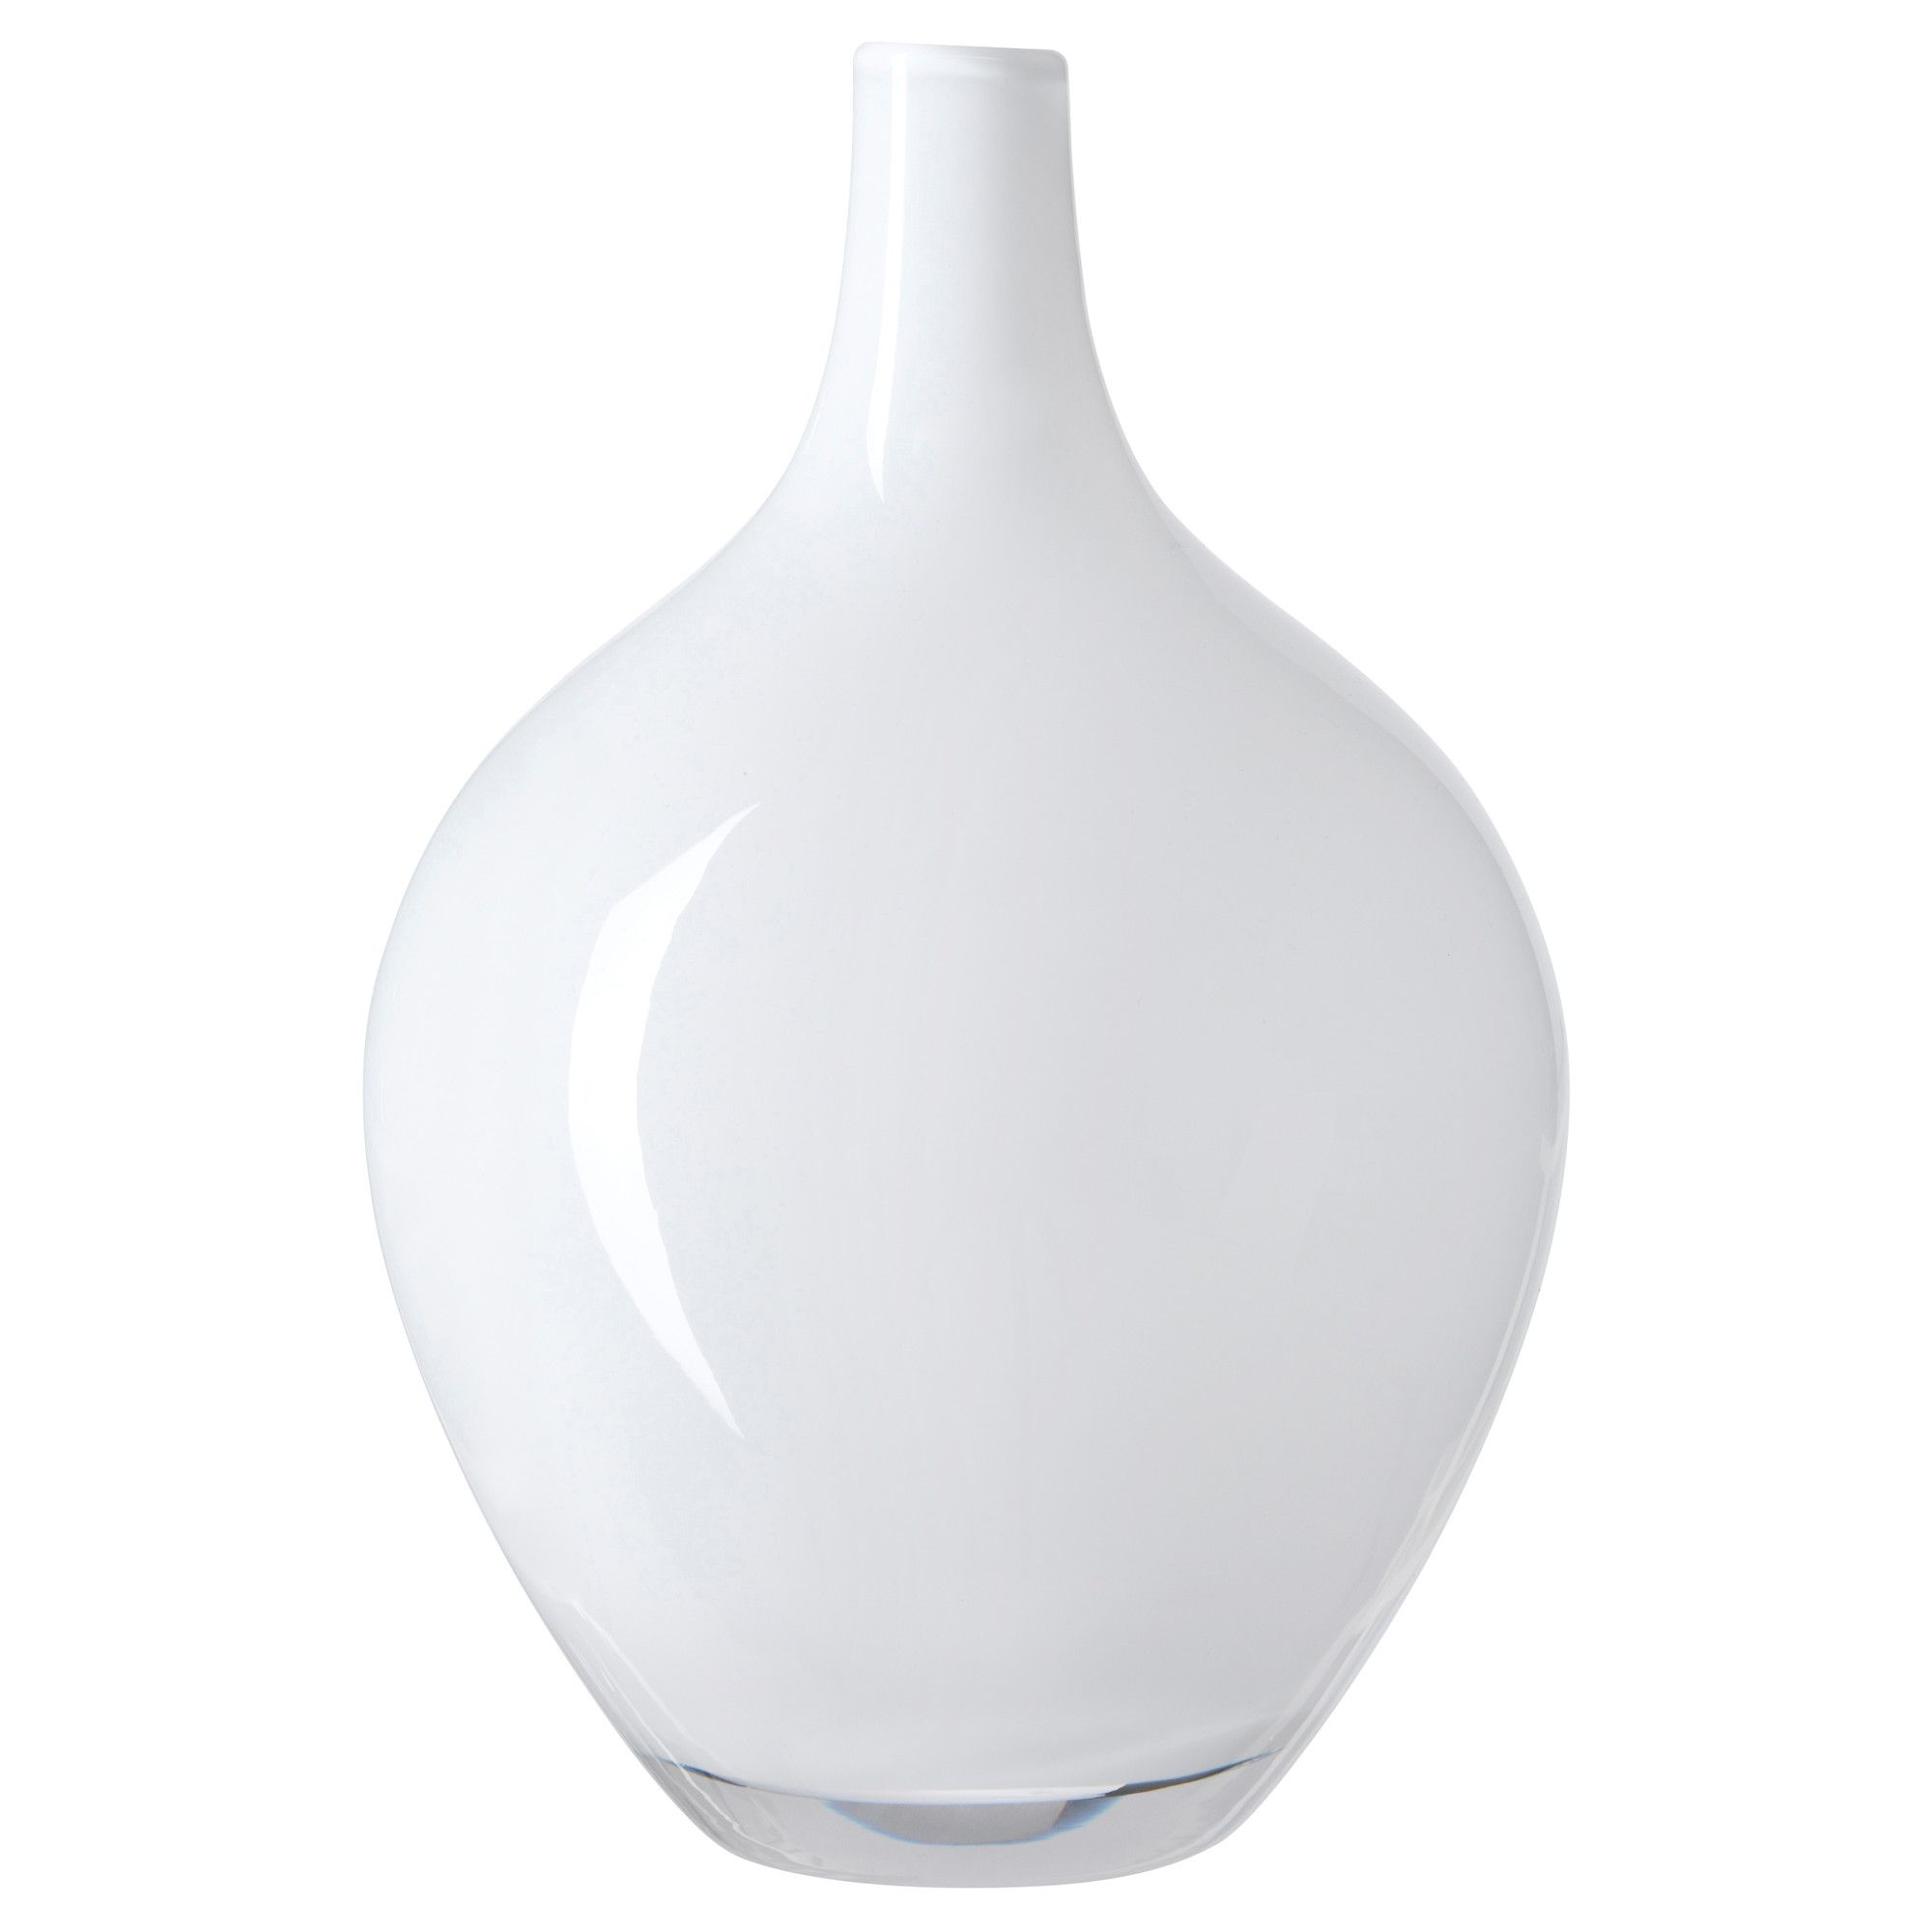 20 ea- salong vase - ikea | rf rentals available | pinterest | ikea